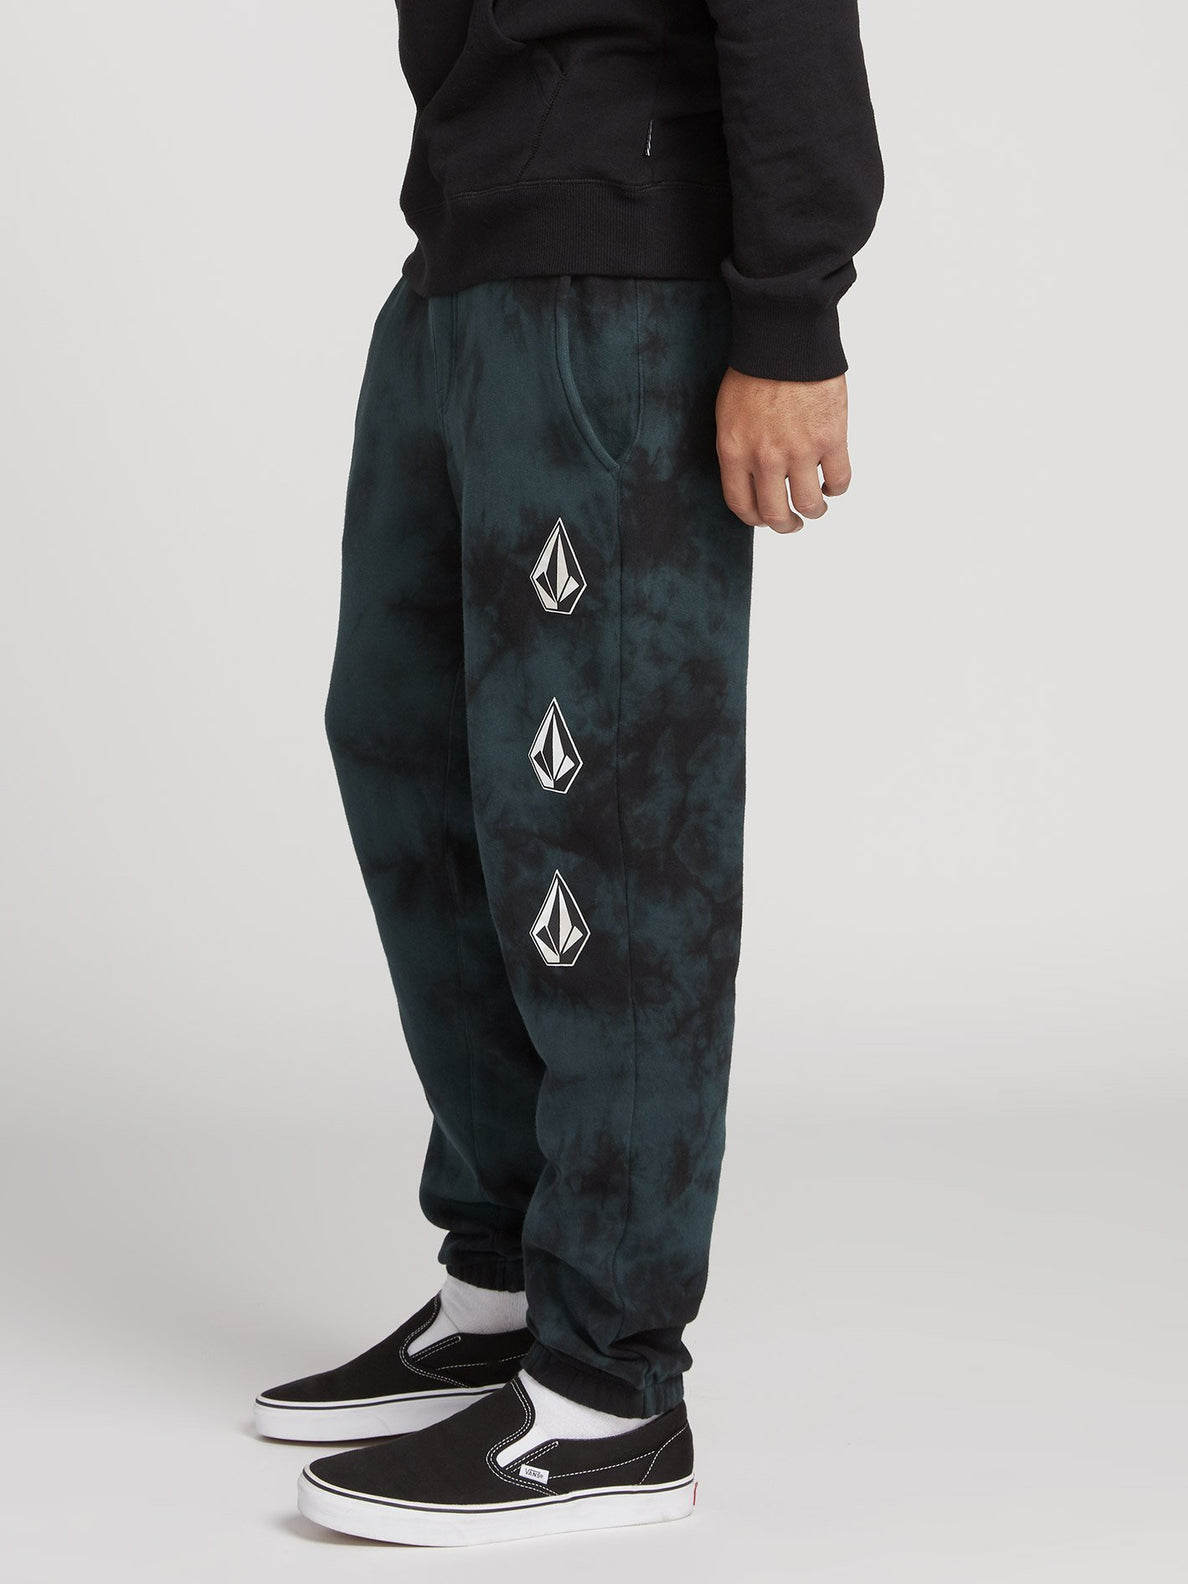 Deadly Stones Pant - Evergreen (A1231904_EVR) [3]